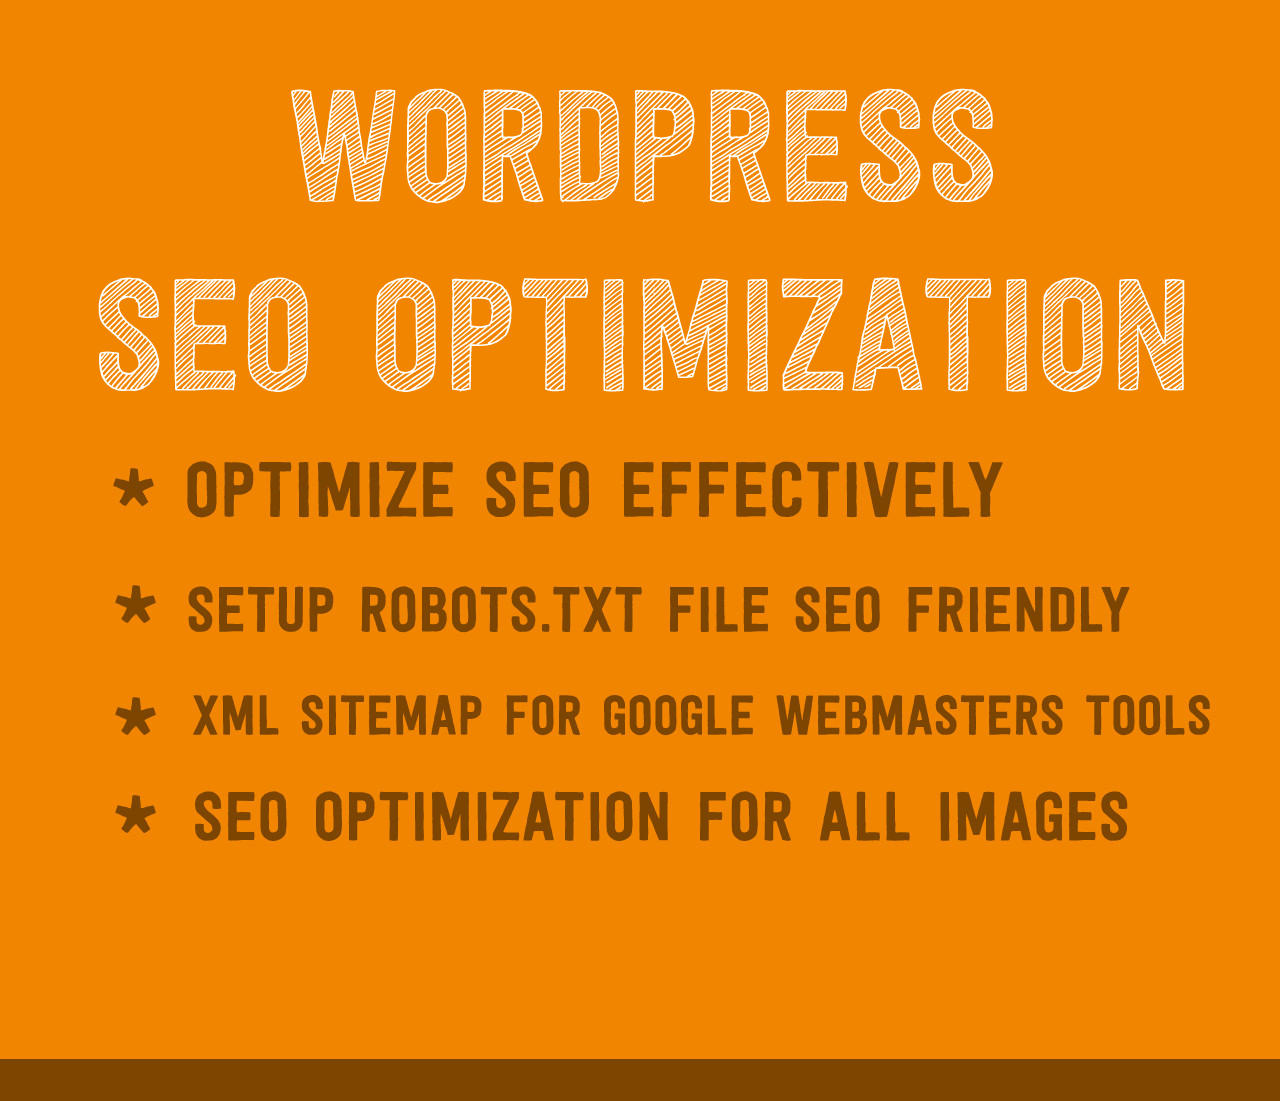 WordPress SEO Optimization with a Smile by MuhammadHaroon - 73208